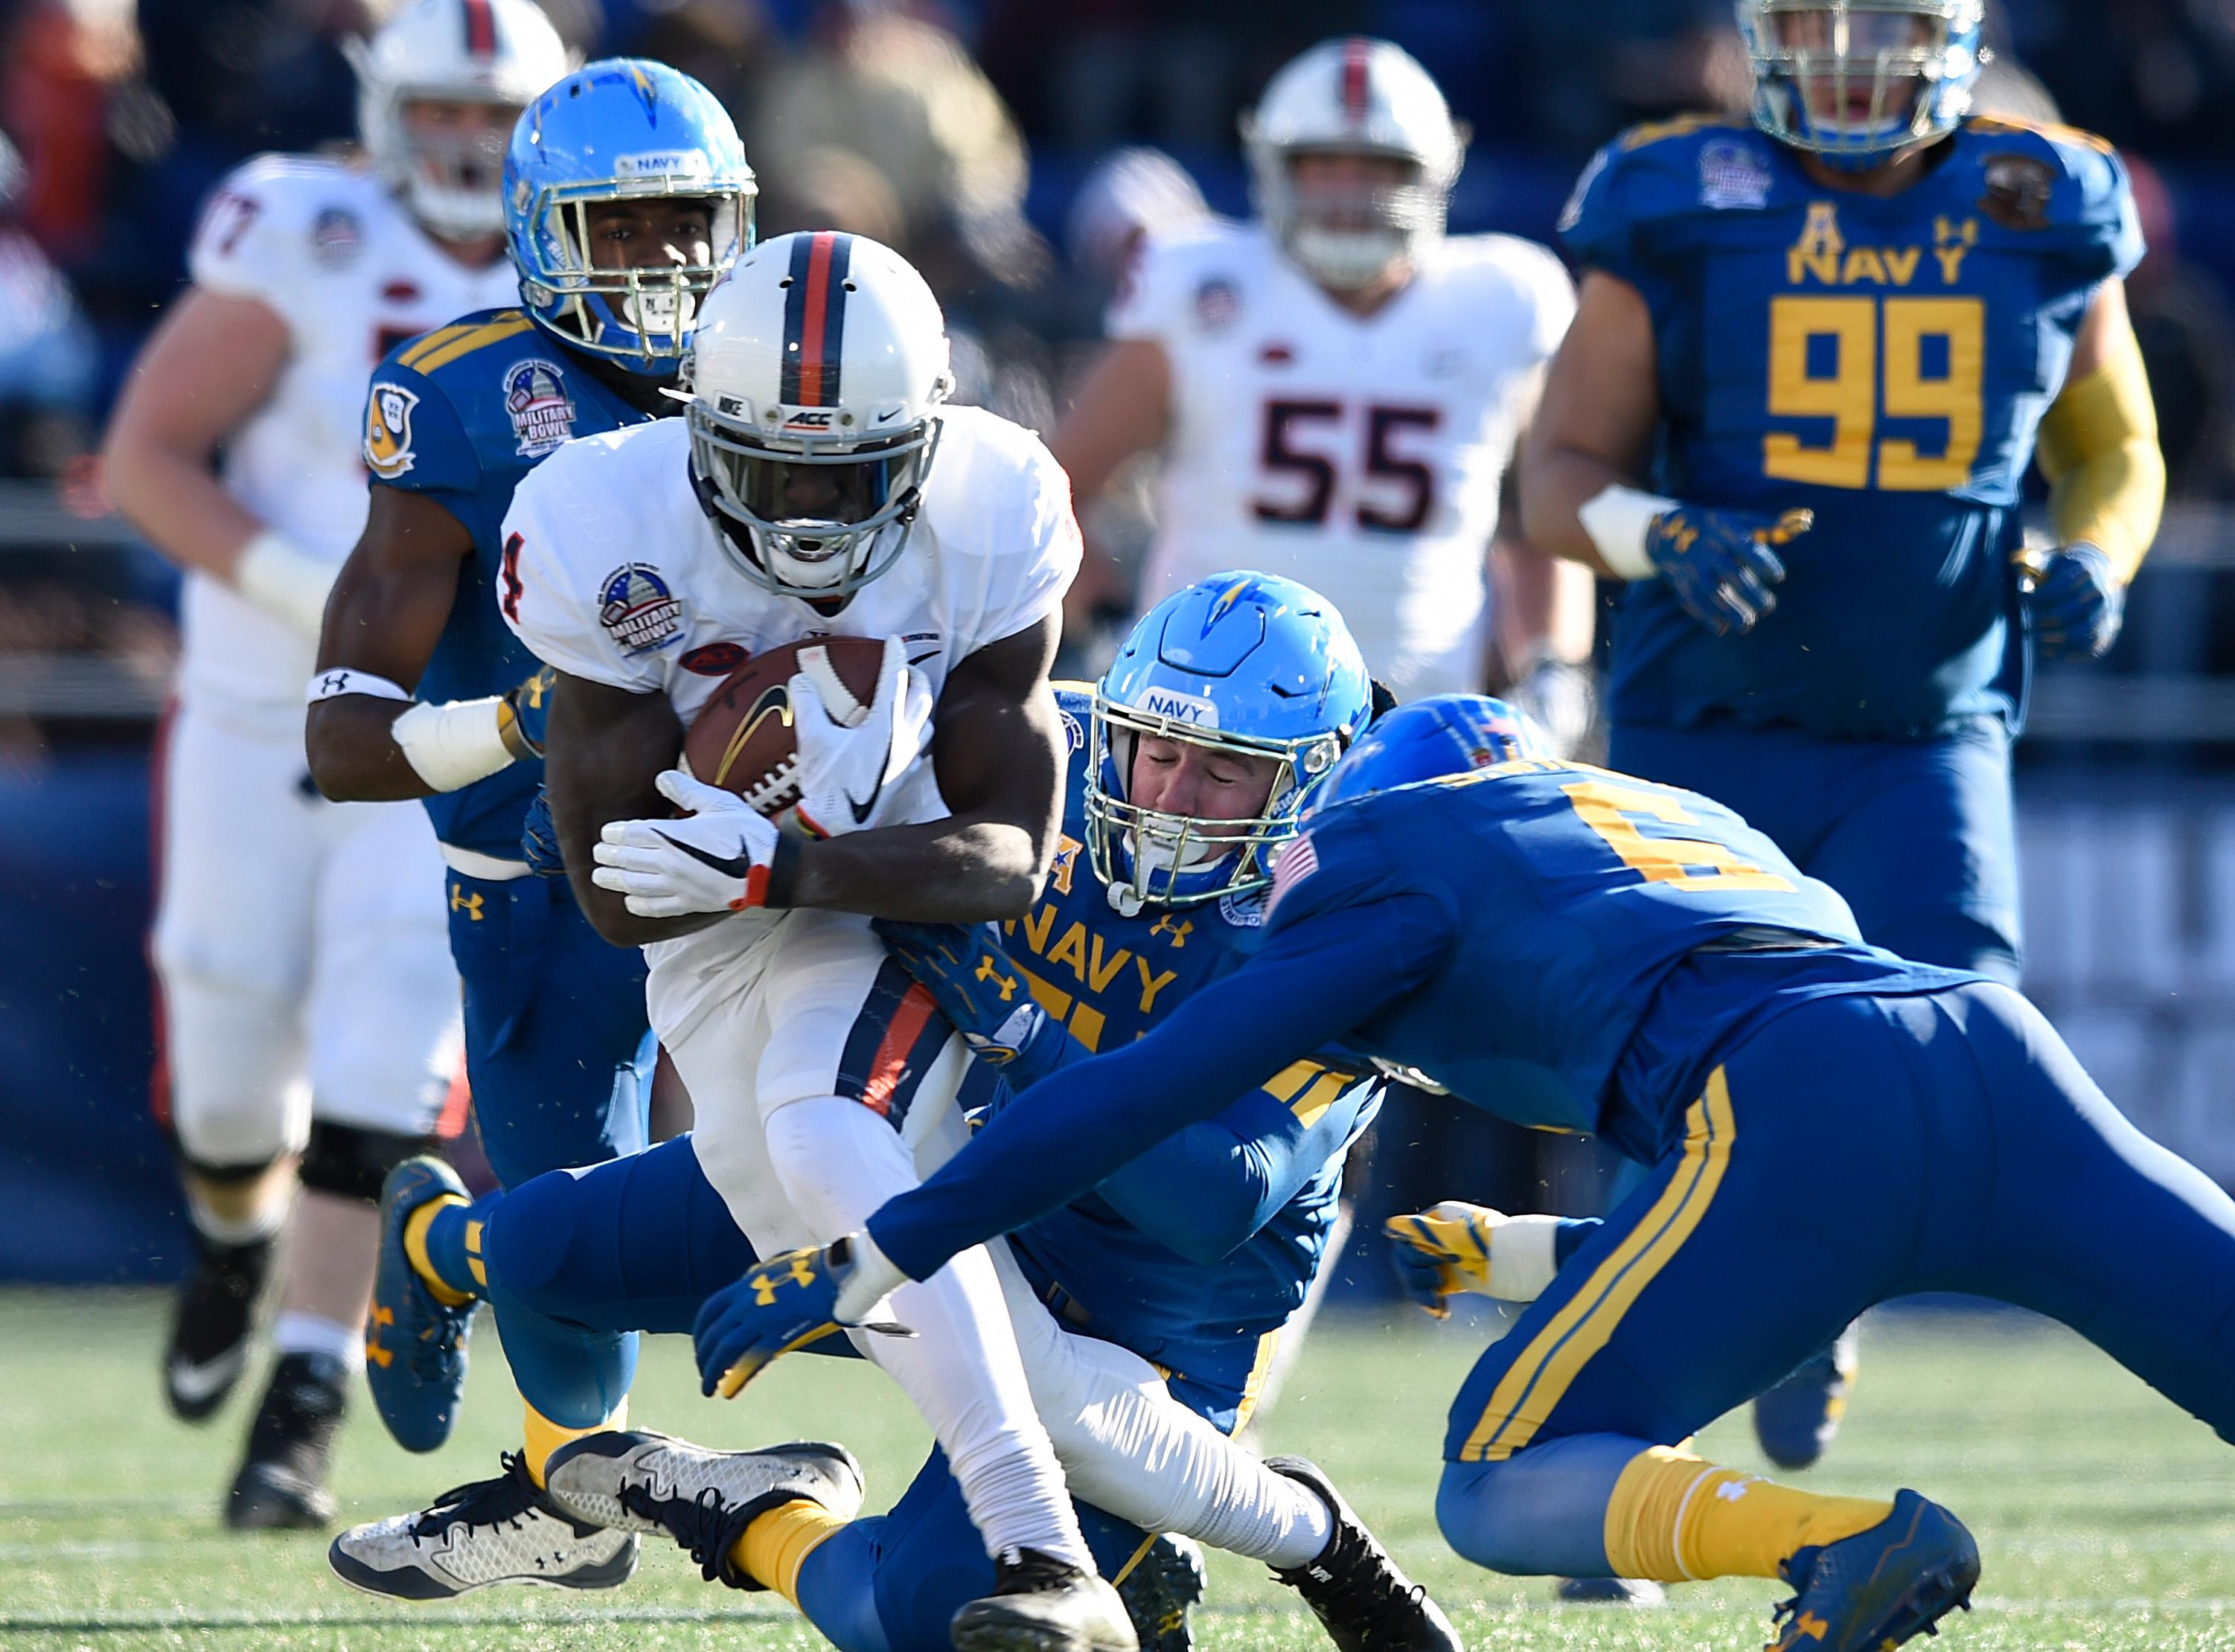 Virginia's Olamide Zaccheaus runs the ball against Navy in the first half of the Military Bowl NCAA college football game, Thursday, Dec. 28, 2017, in Annapolis, Md. (AP Photo/Gail Burton)